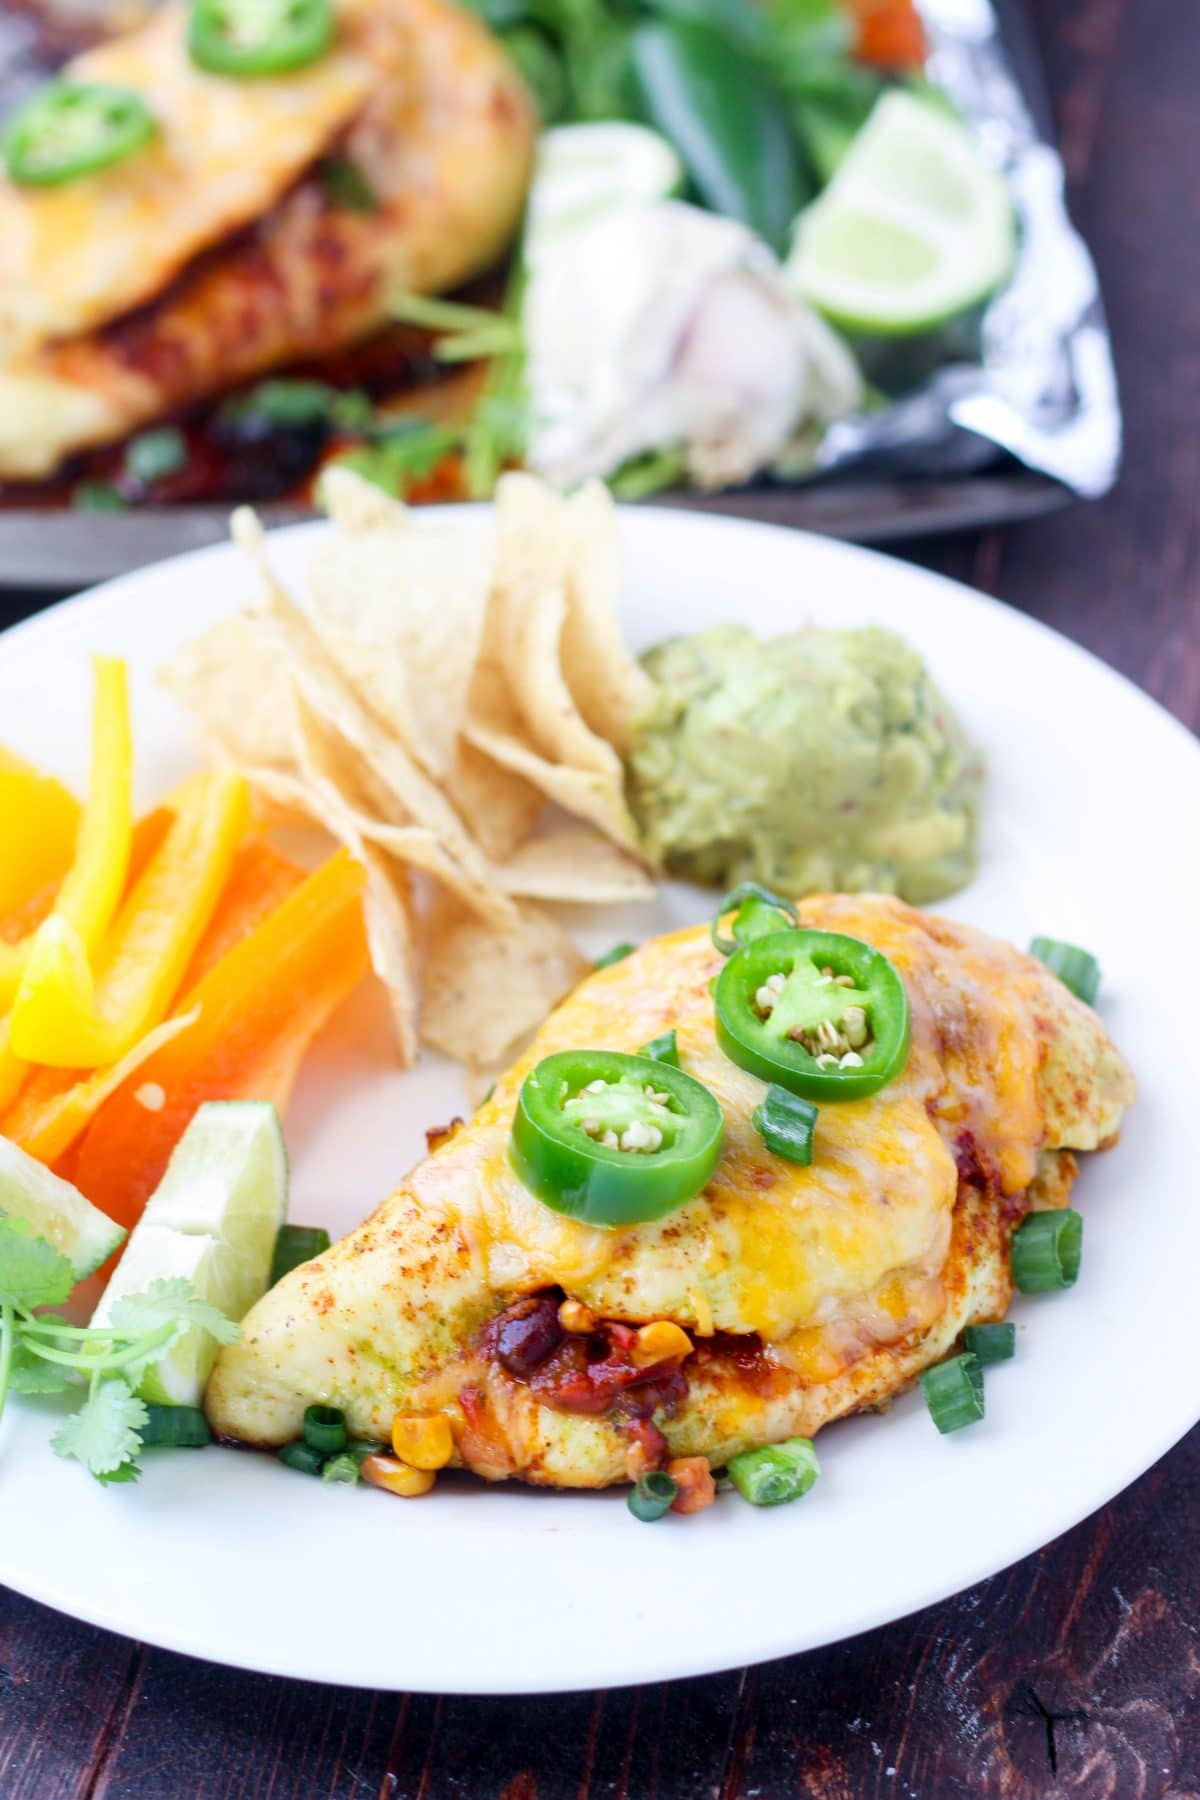 Baked Salsa Stuffed Chicken ready to eat on a plate